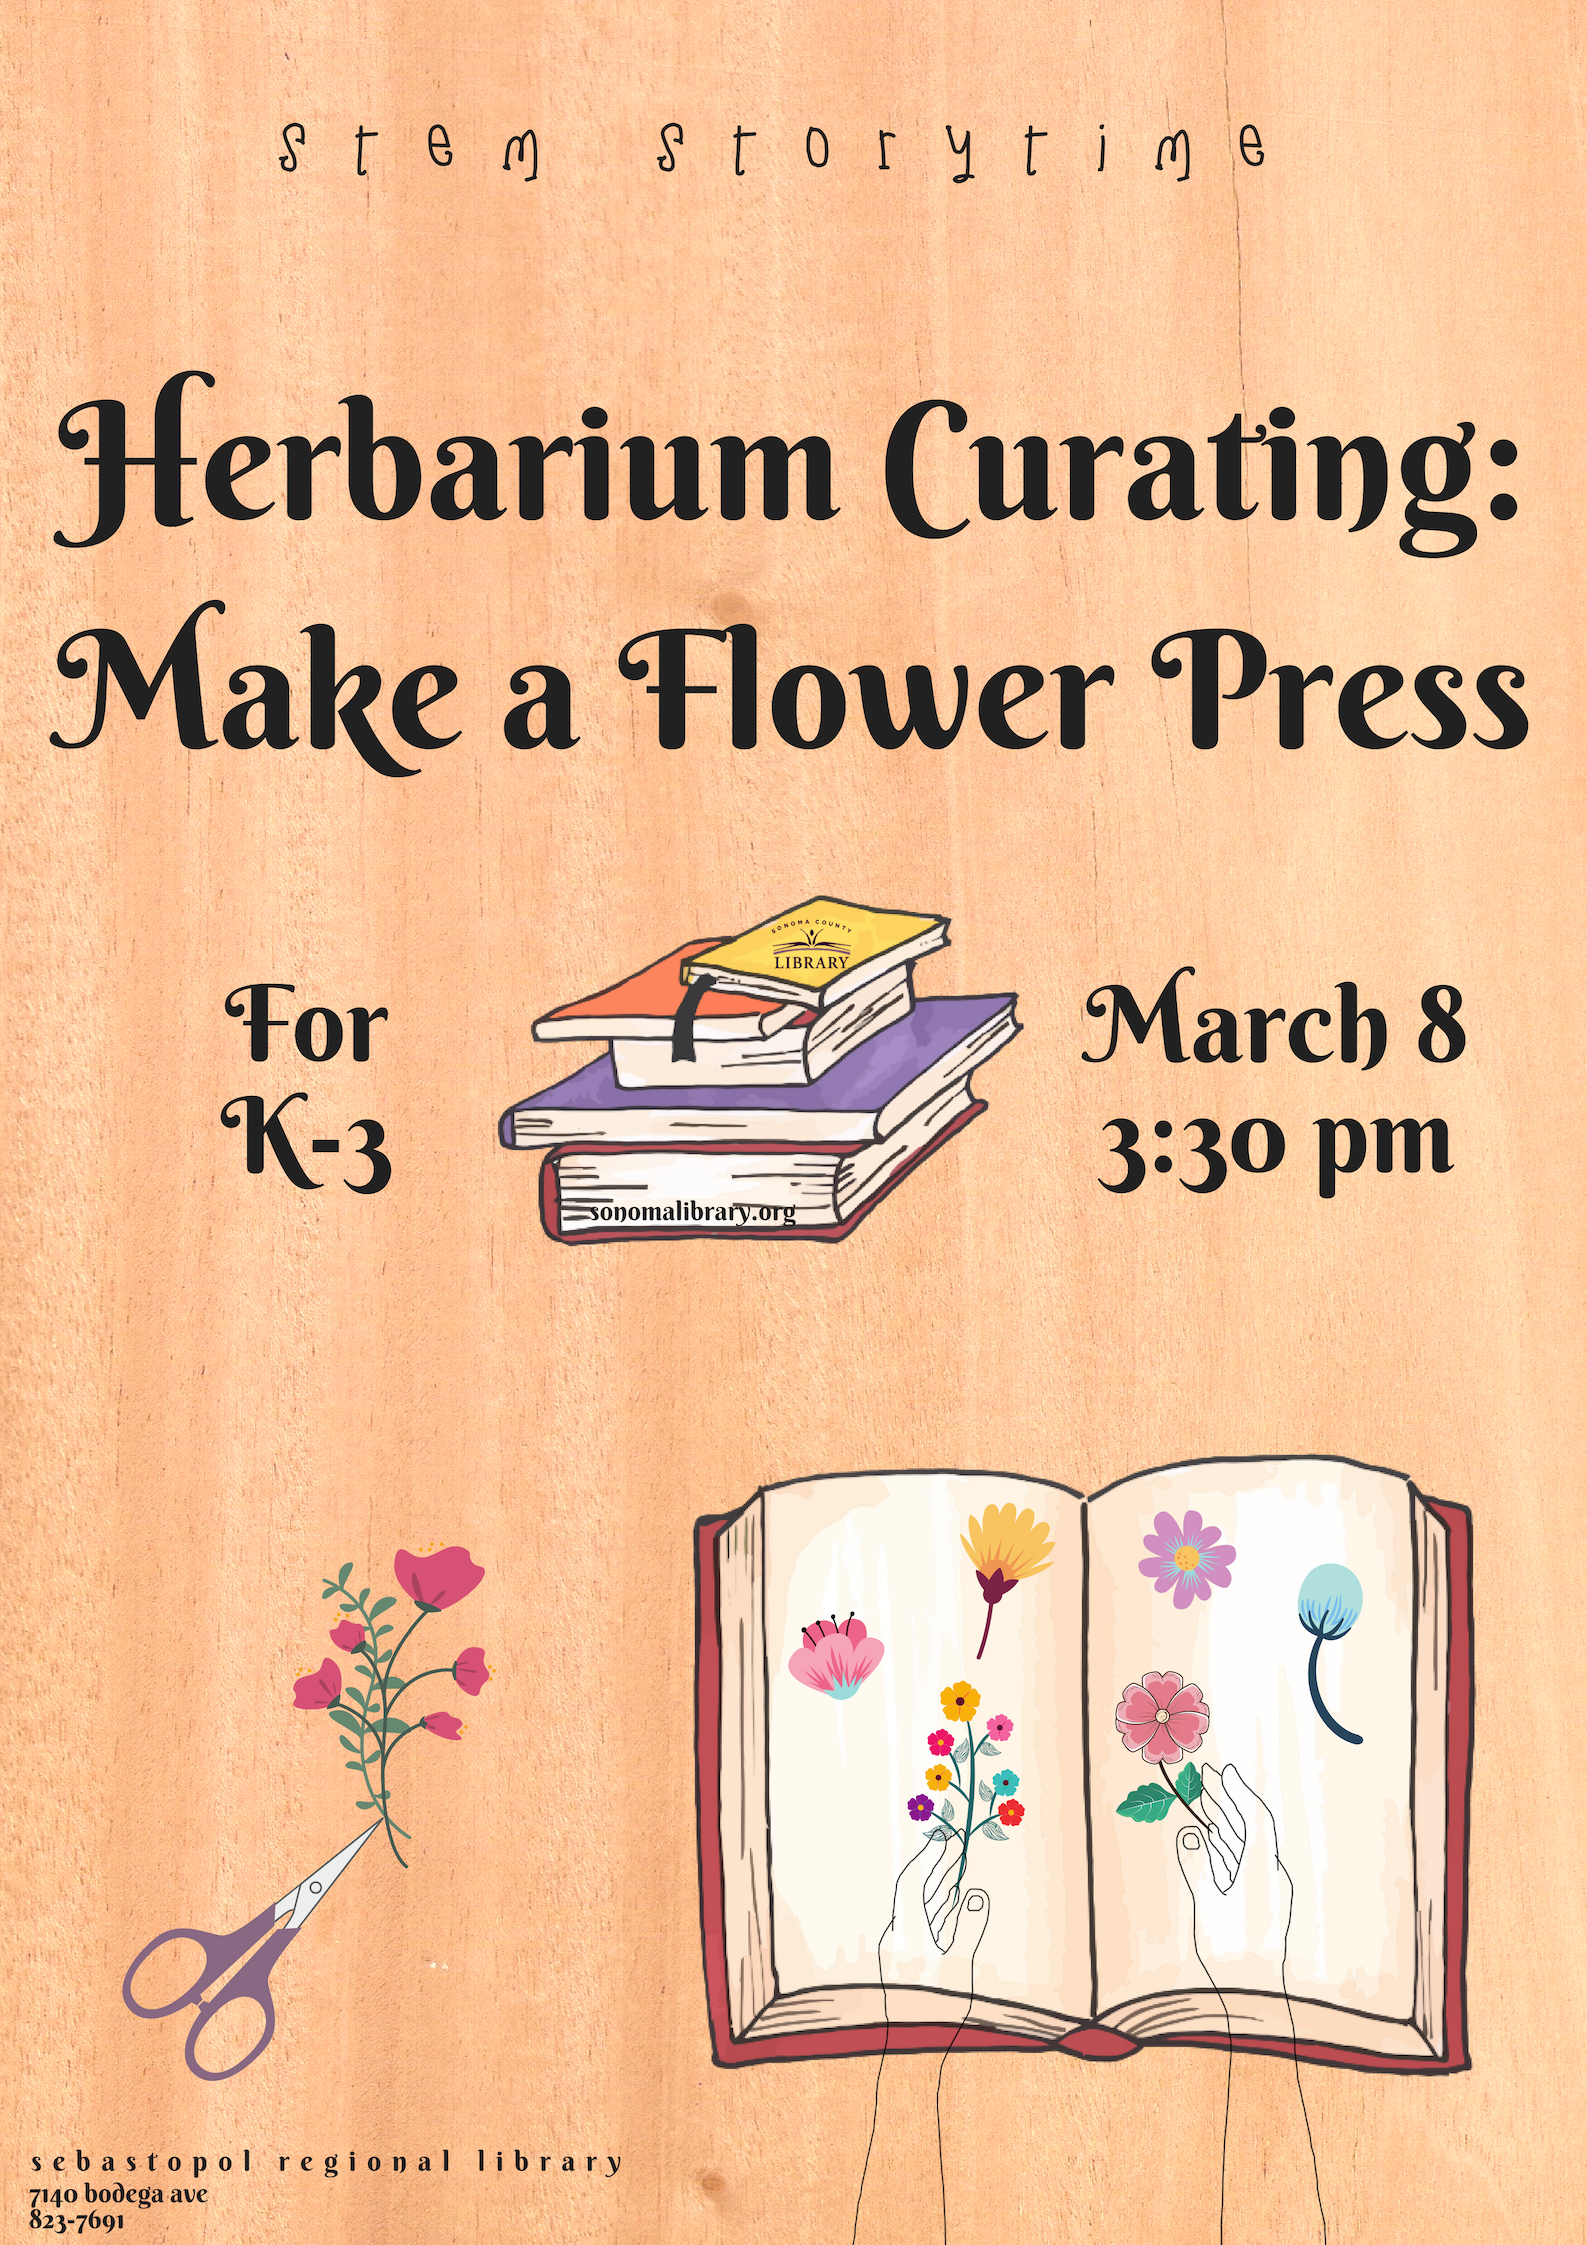 STEM Storytime presents Herbarium Curating: Make a Flower Press